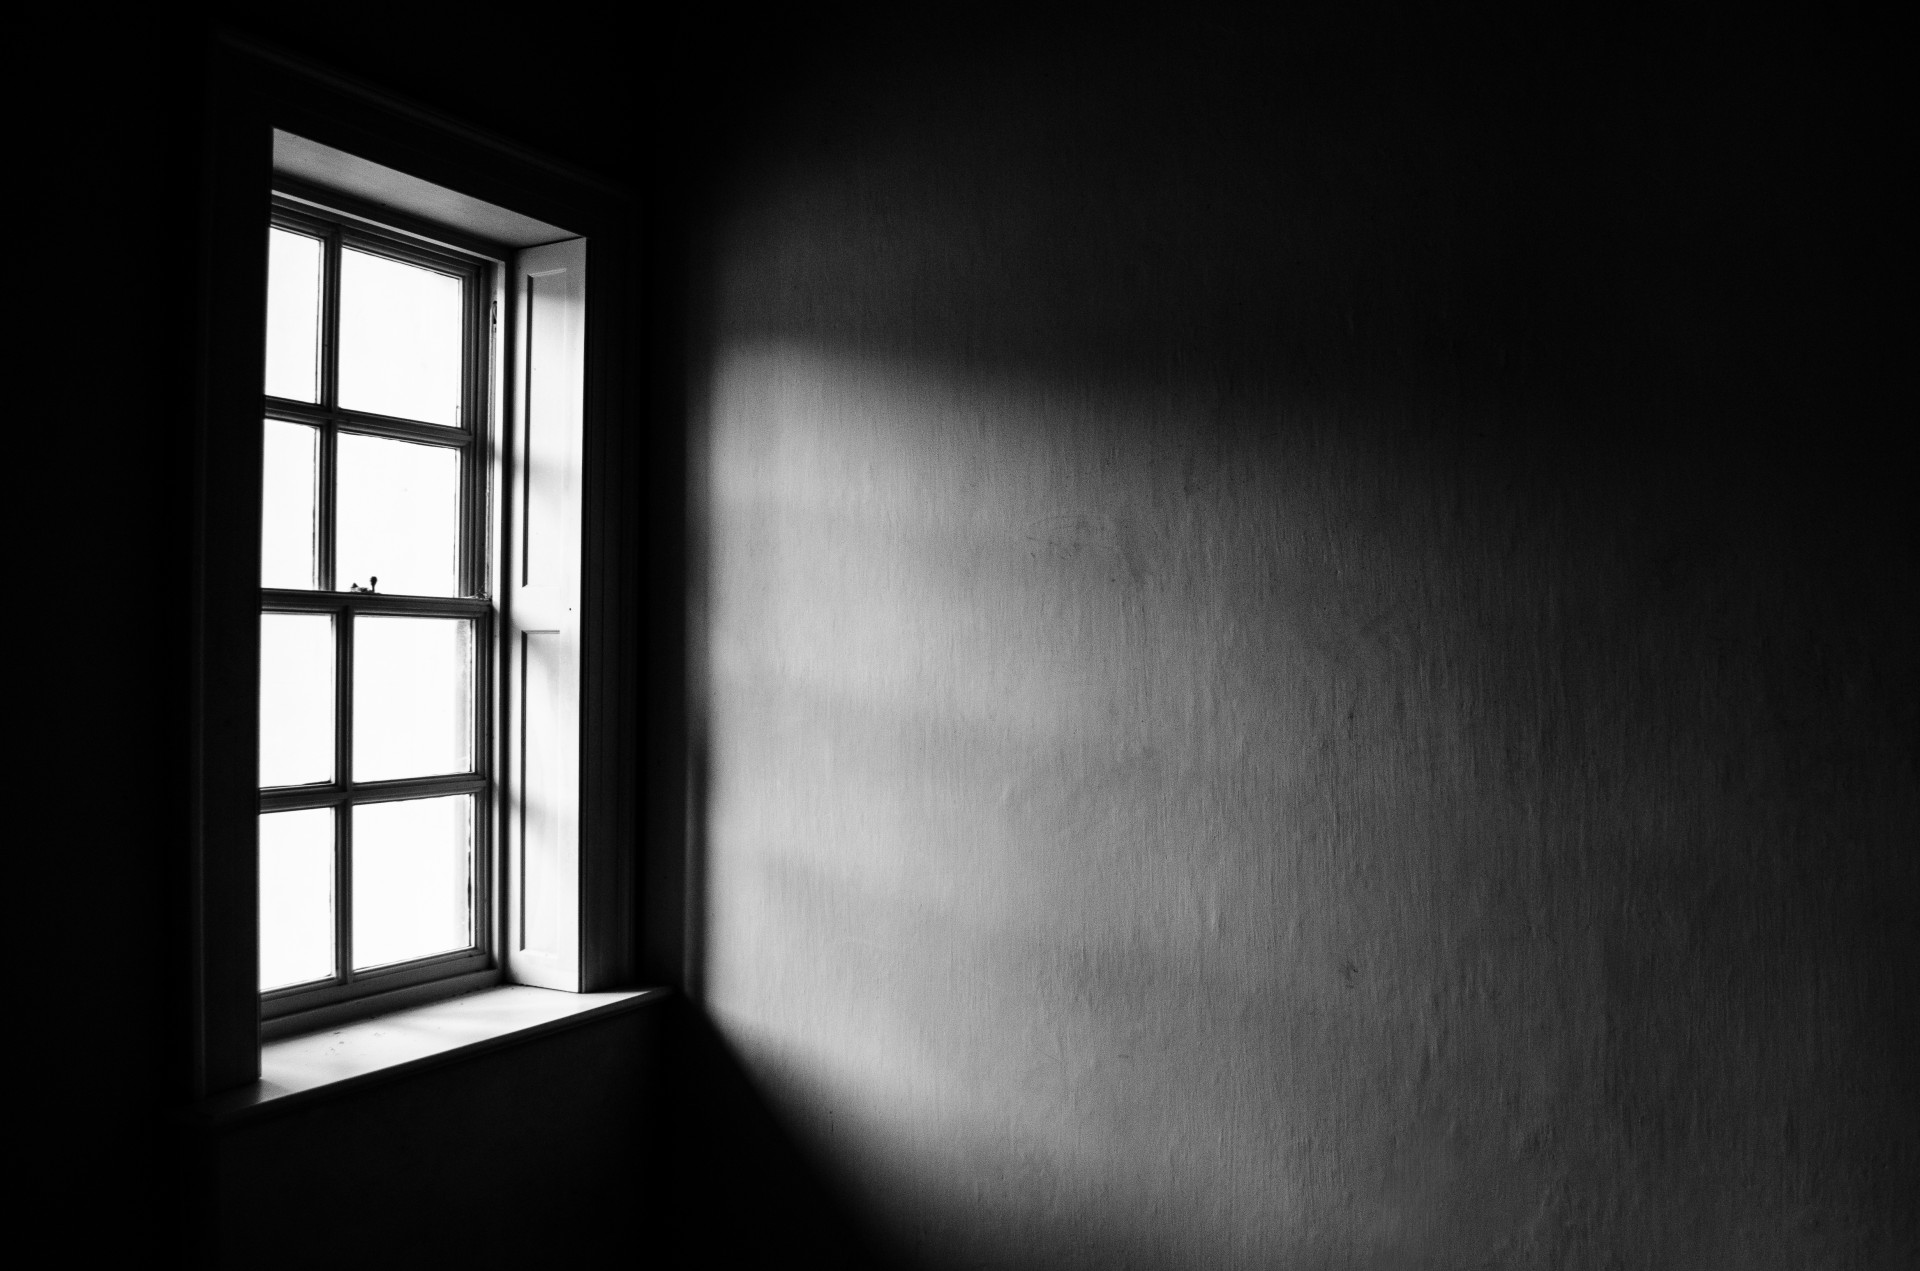 contrast-light-from-a-window